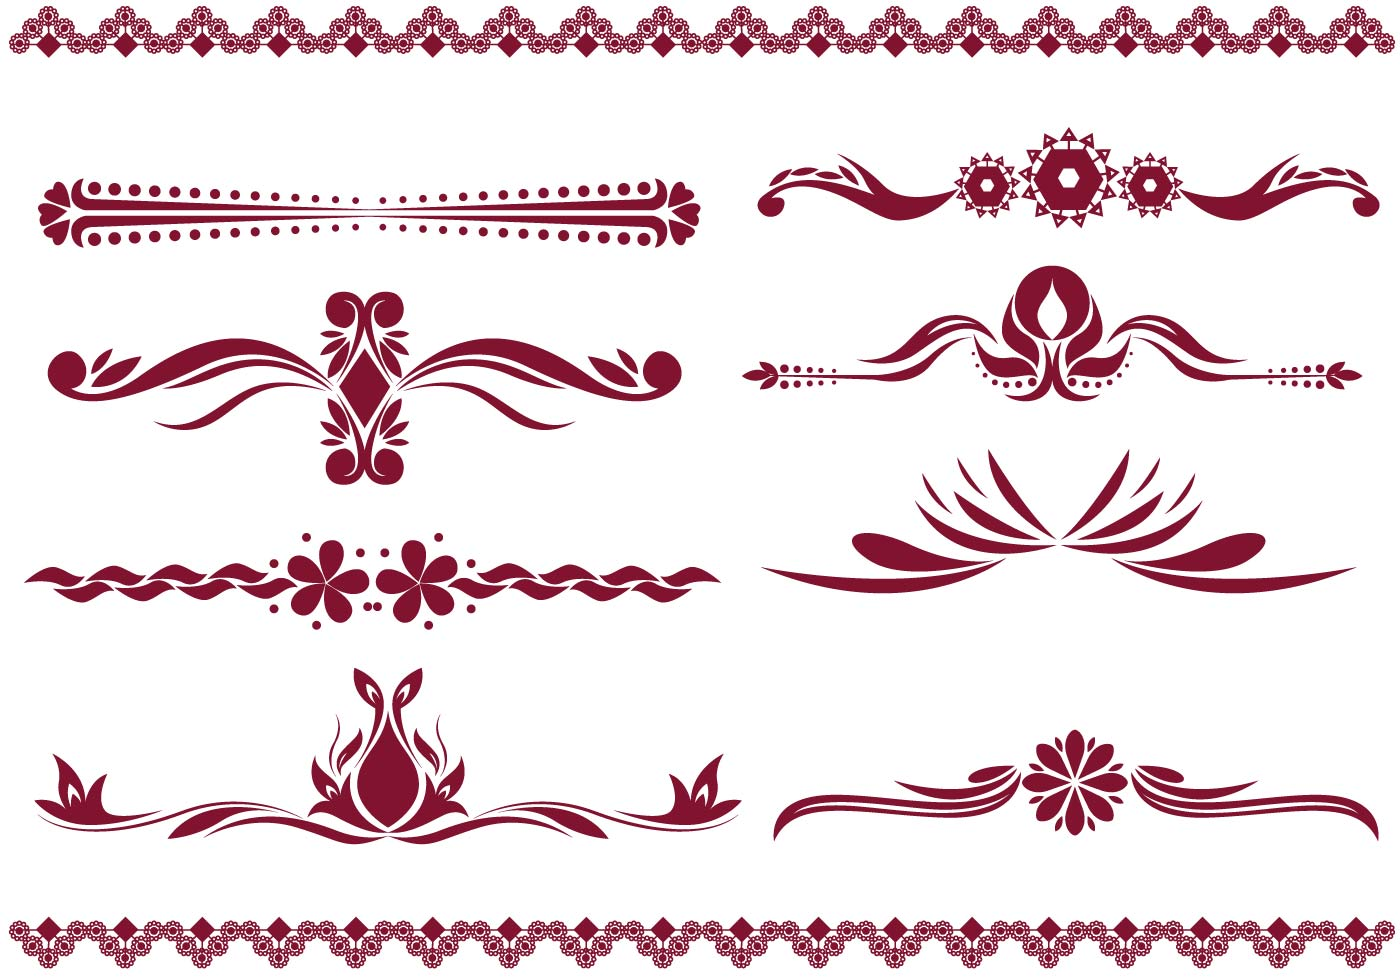 Line Drawing Vector Graphics : Decorative lines vector clipart free download